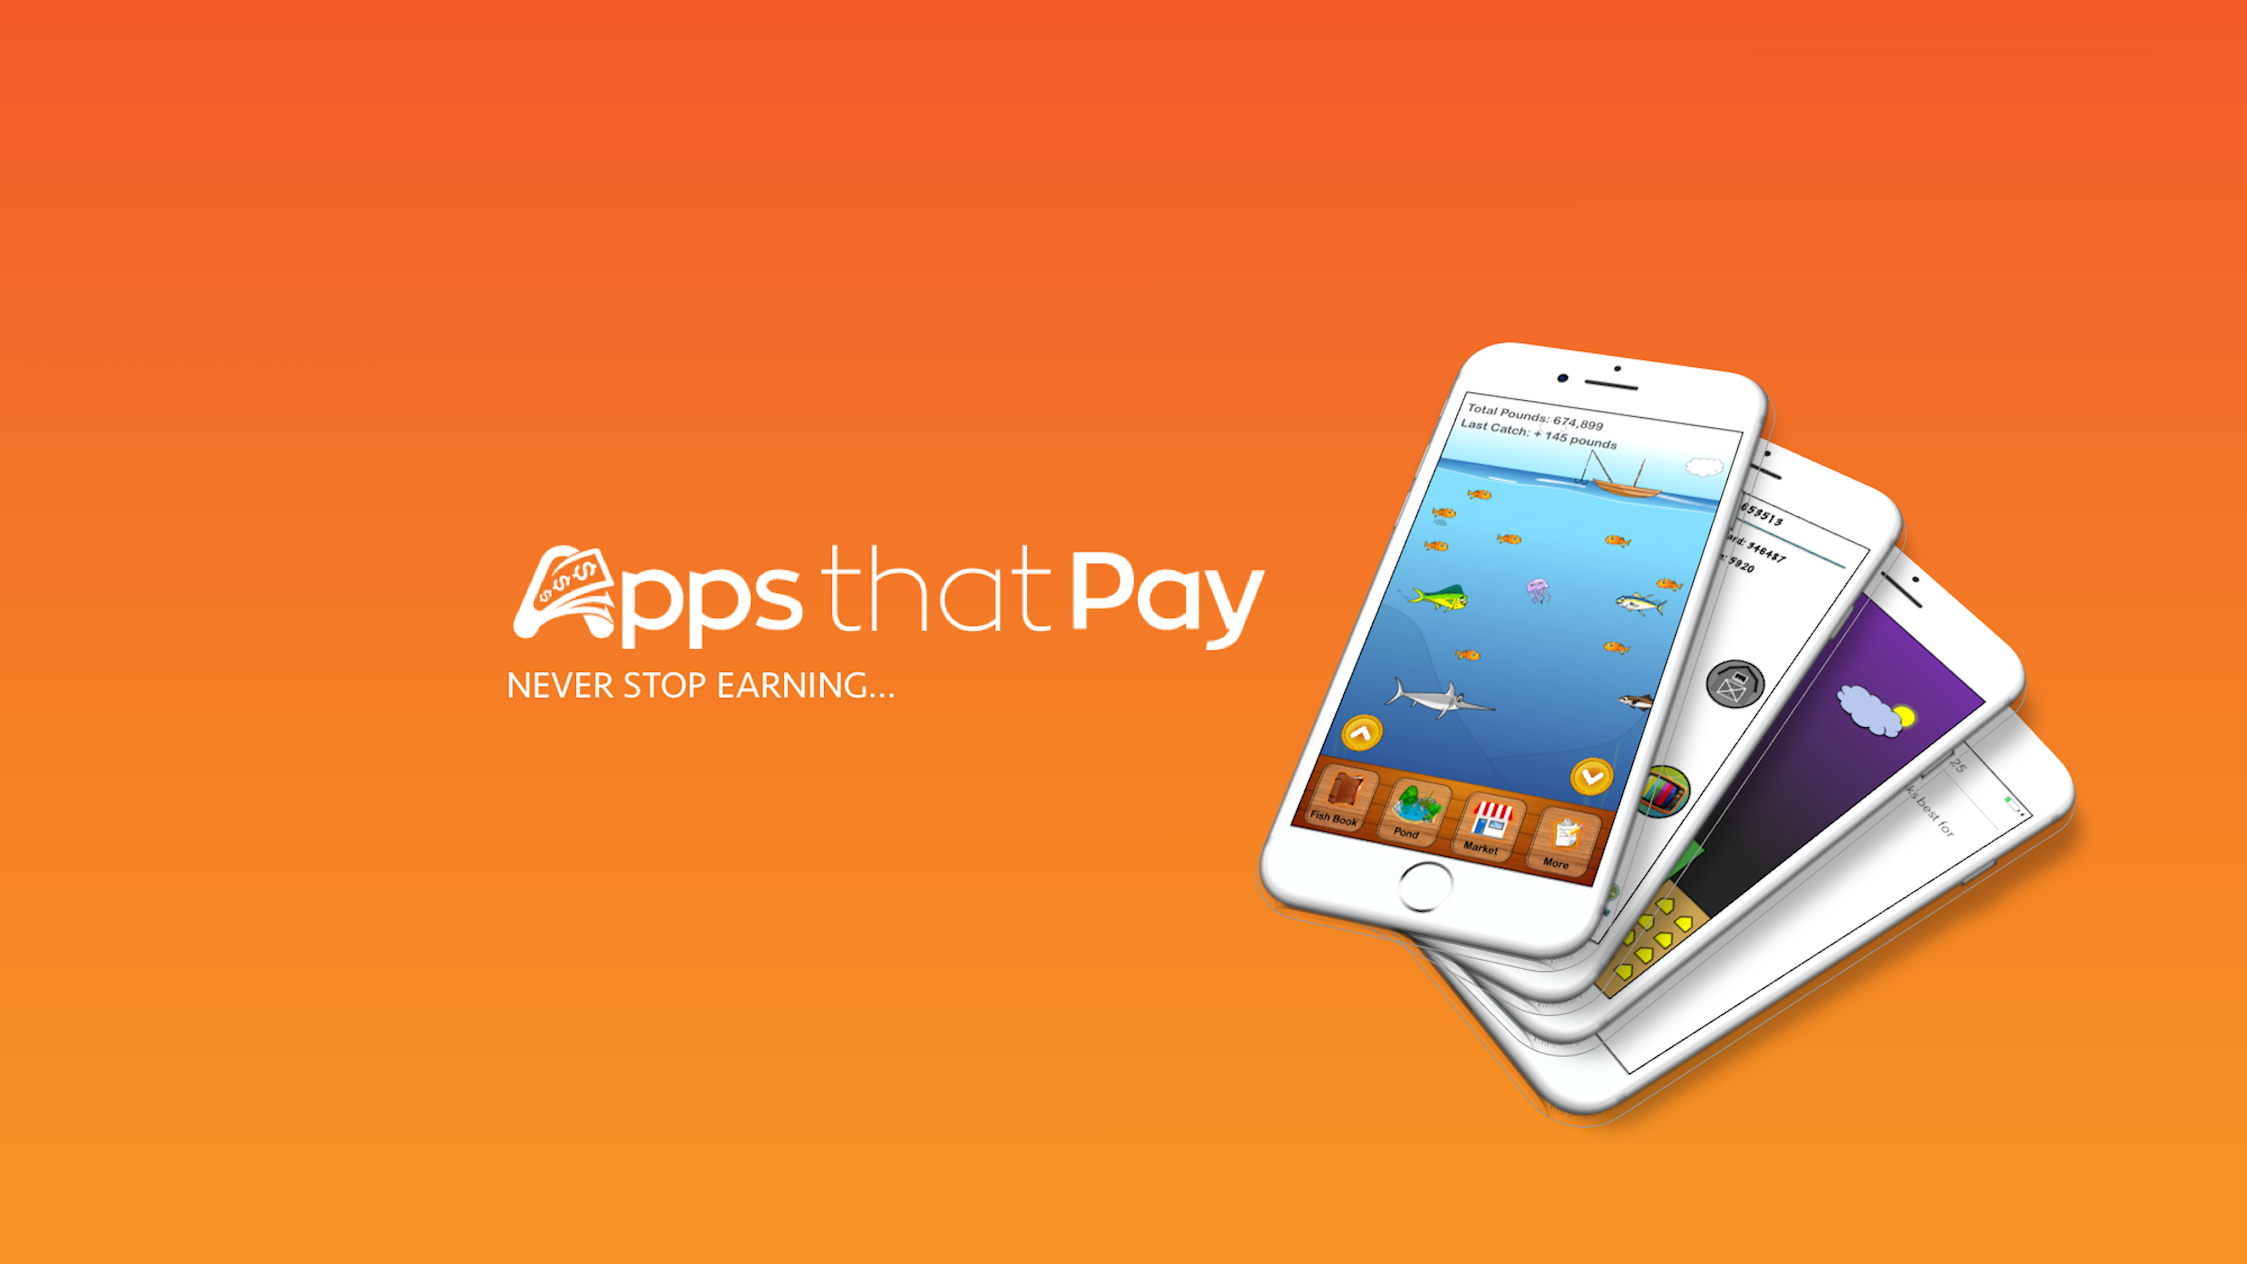 Apps that Pay, LLC